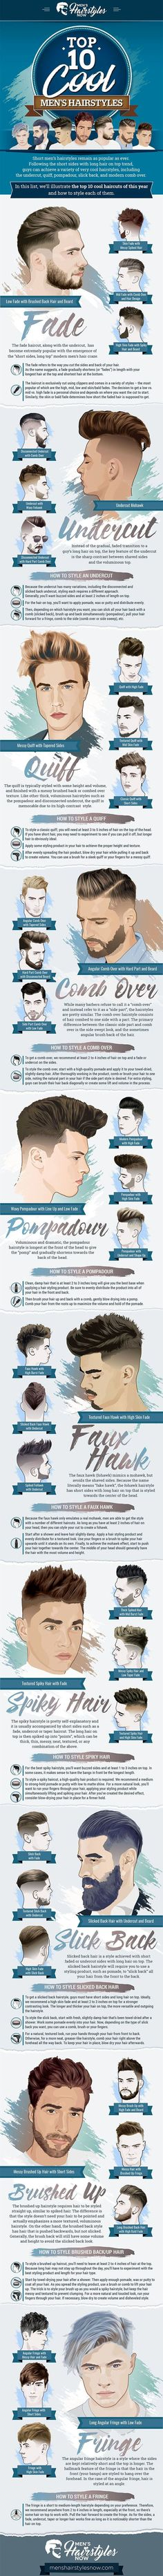 Infographic: Trendiest Hairstyles For Men In 2017 – DesignTAXI.com… Infographic: Trendiest Hairstyles For Men In 2017 – DesignTAXI.com http://www.tophaircuts.us/2017/05/02/infographic-trendiest-hairstyles-for-men-in-2017-designtaxi-com/